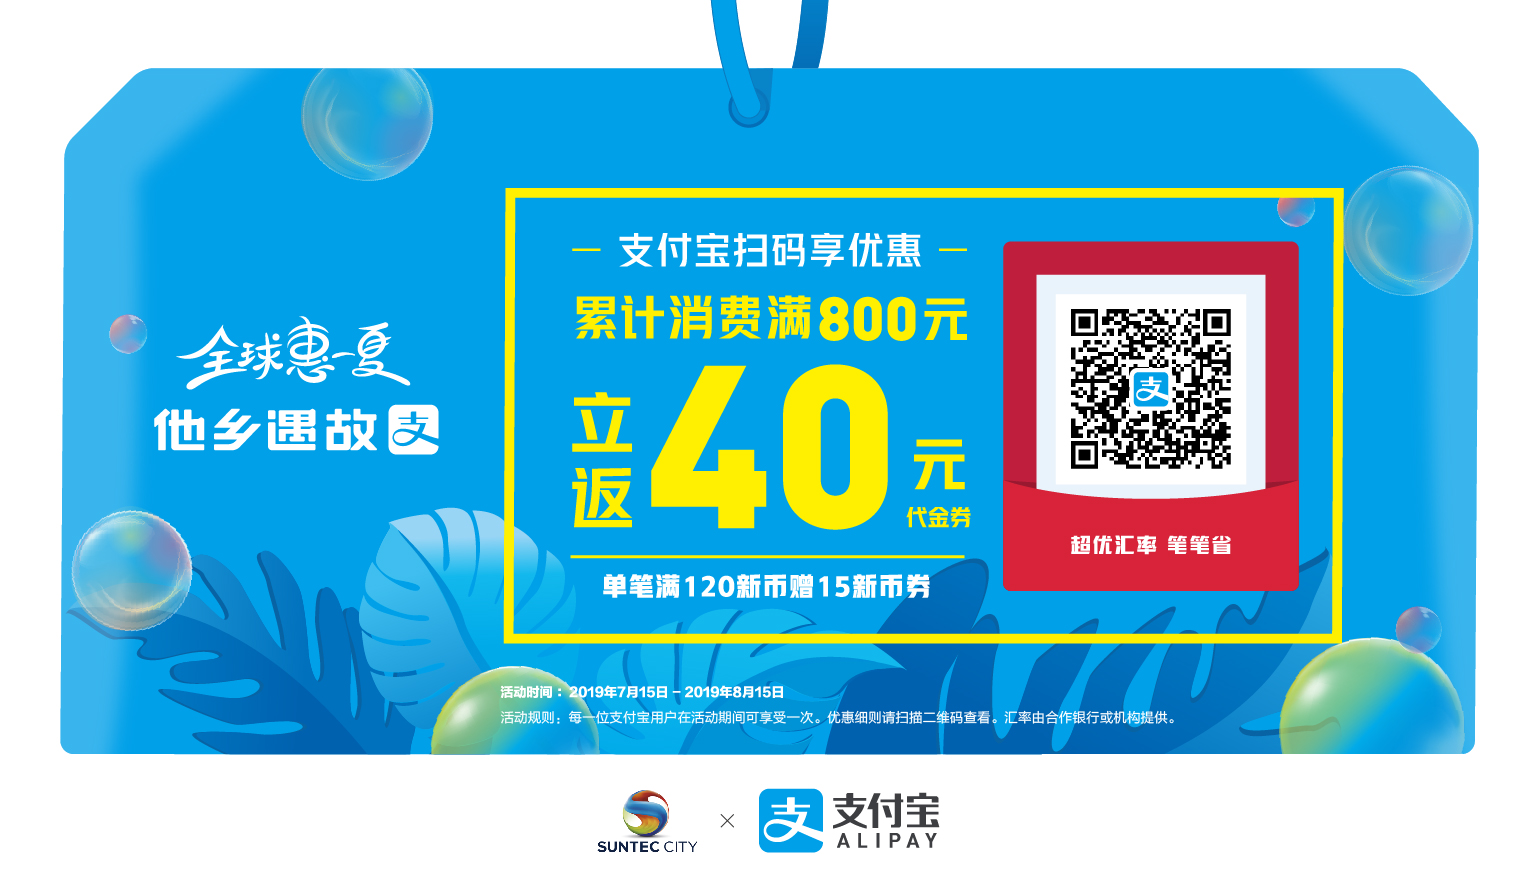 89d237e9c Enjoy great perks when you shop and make payment via Alipay app! With a  minimum spend of $120, stand to redeem $15 Suntec City vou.